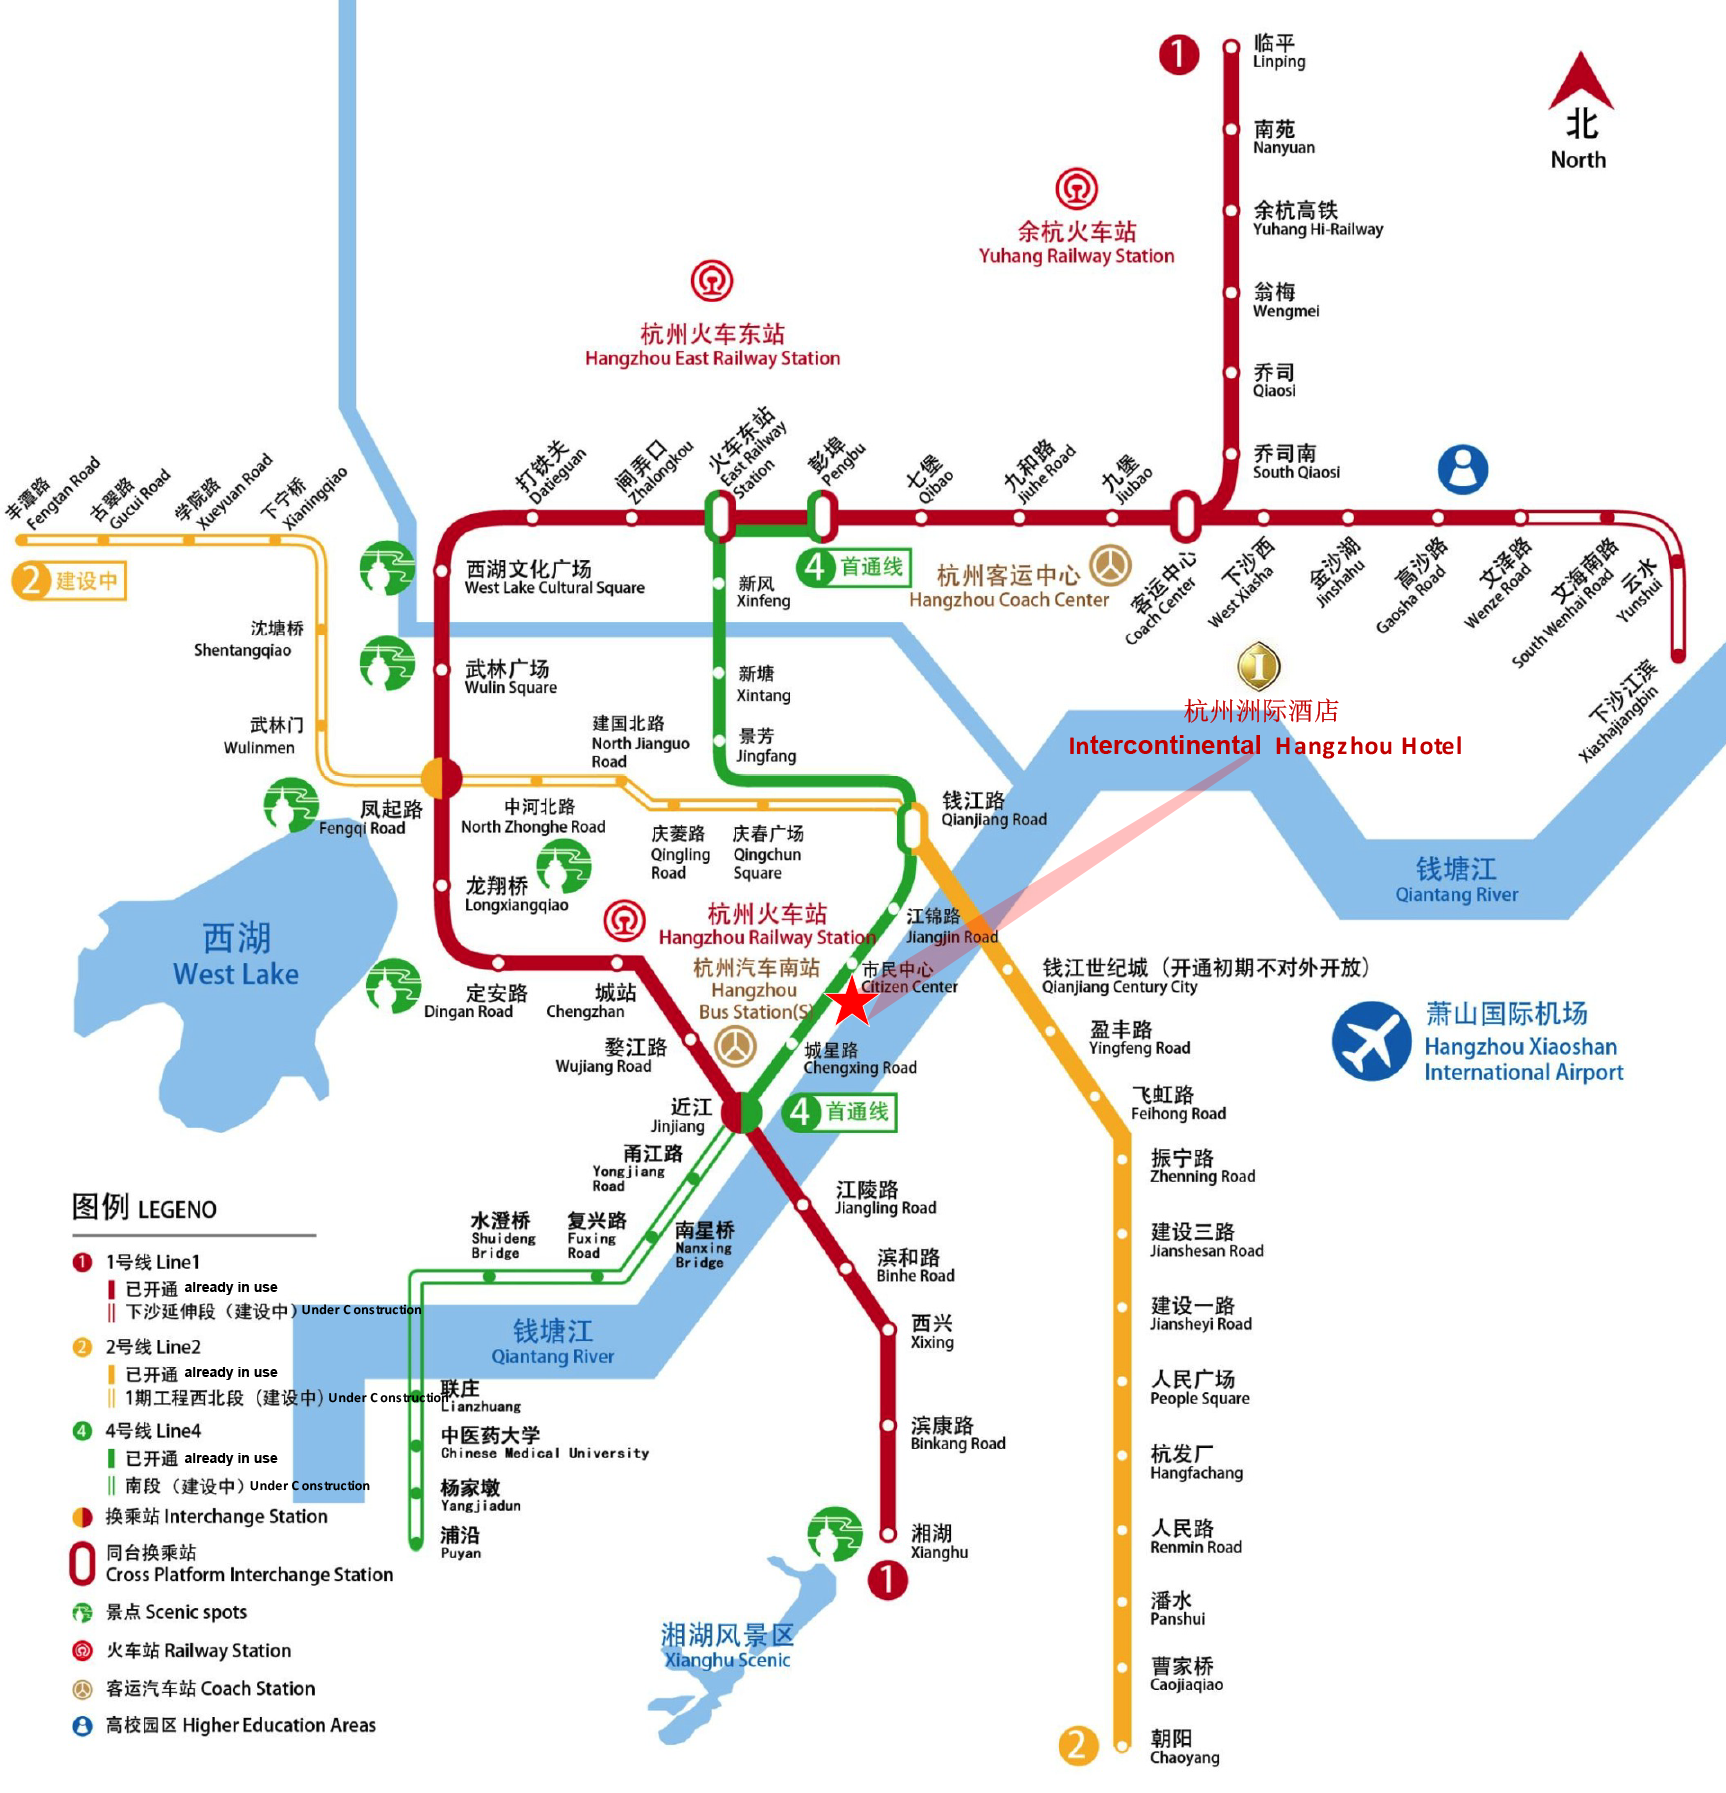 Shanghai Metro Map 2016.The 34th Chinese Control Conference And Sice Annual Conference 2015